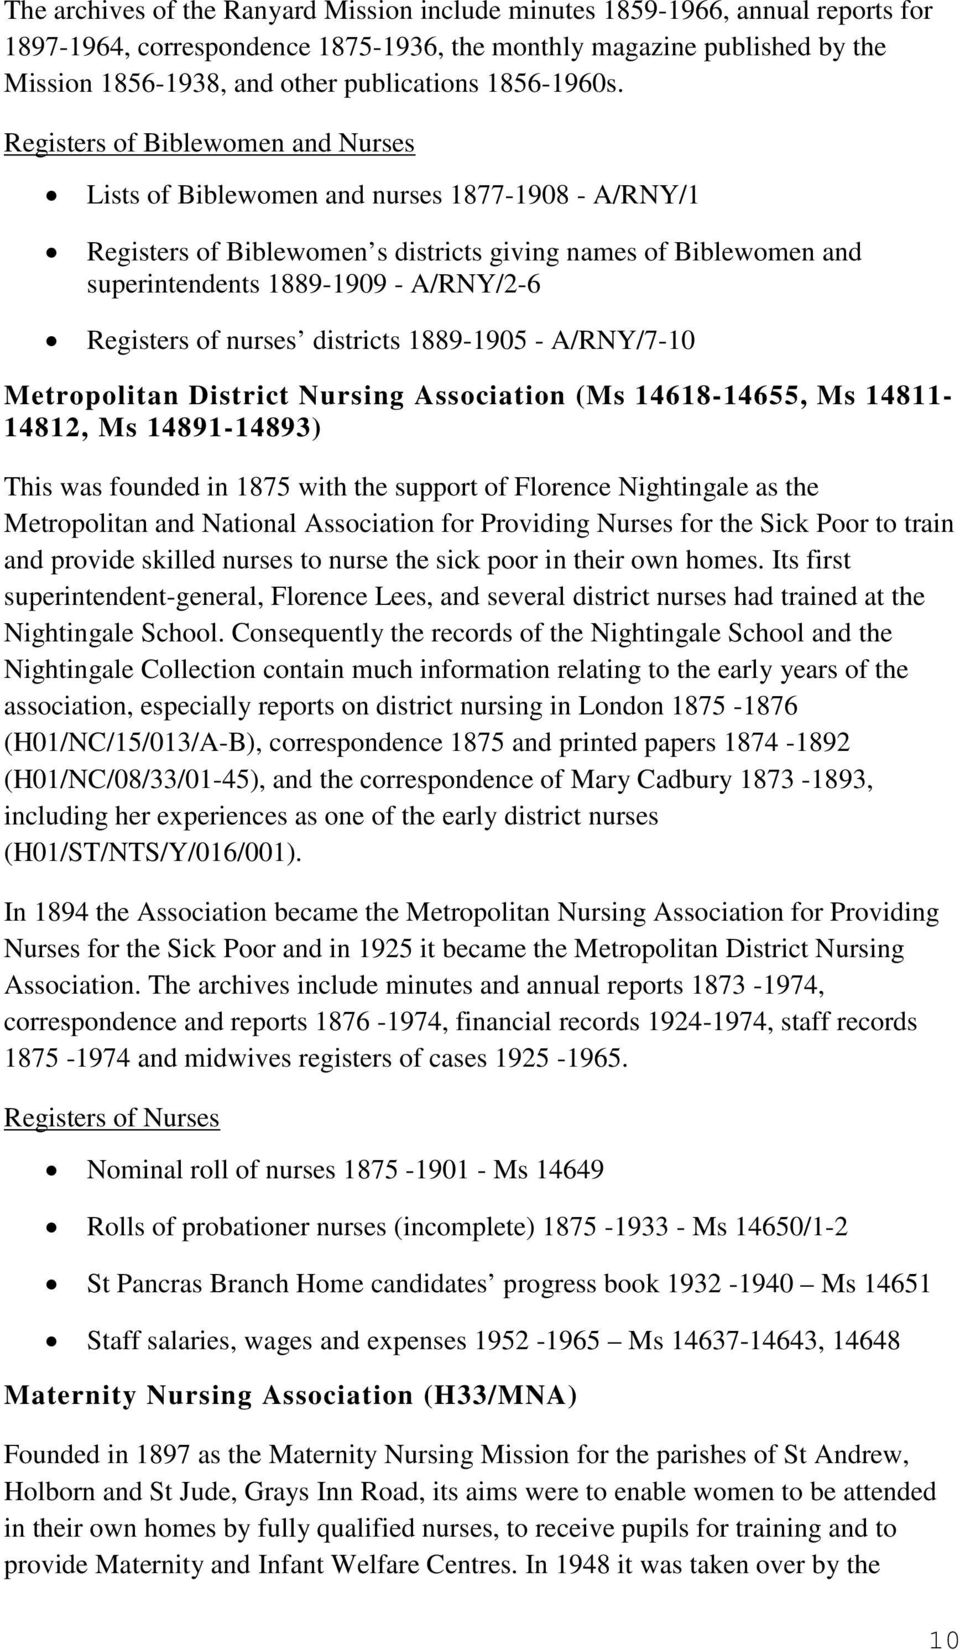 Registers of Biblewomen and Nurses Lists of Biblewomen and nurses 1877-1908 - A/RNY/1 Registers of Biblewomen s districts giving names of Biblewomen and superintendents 1889-1909 - A/RNY/2-6